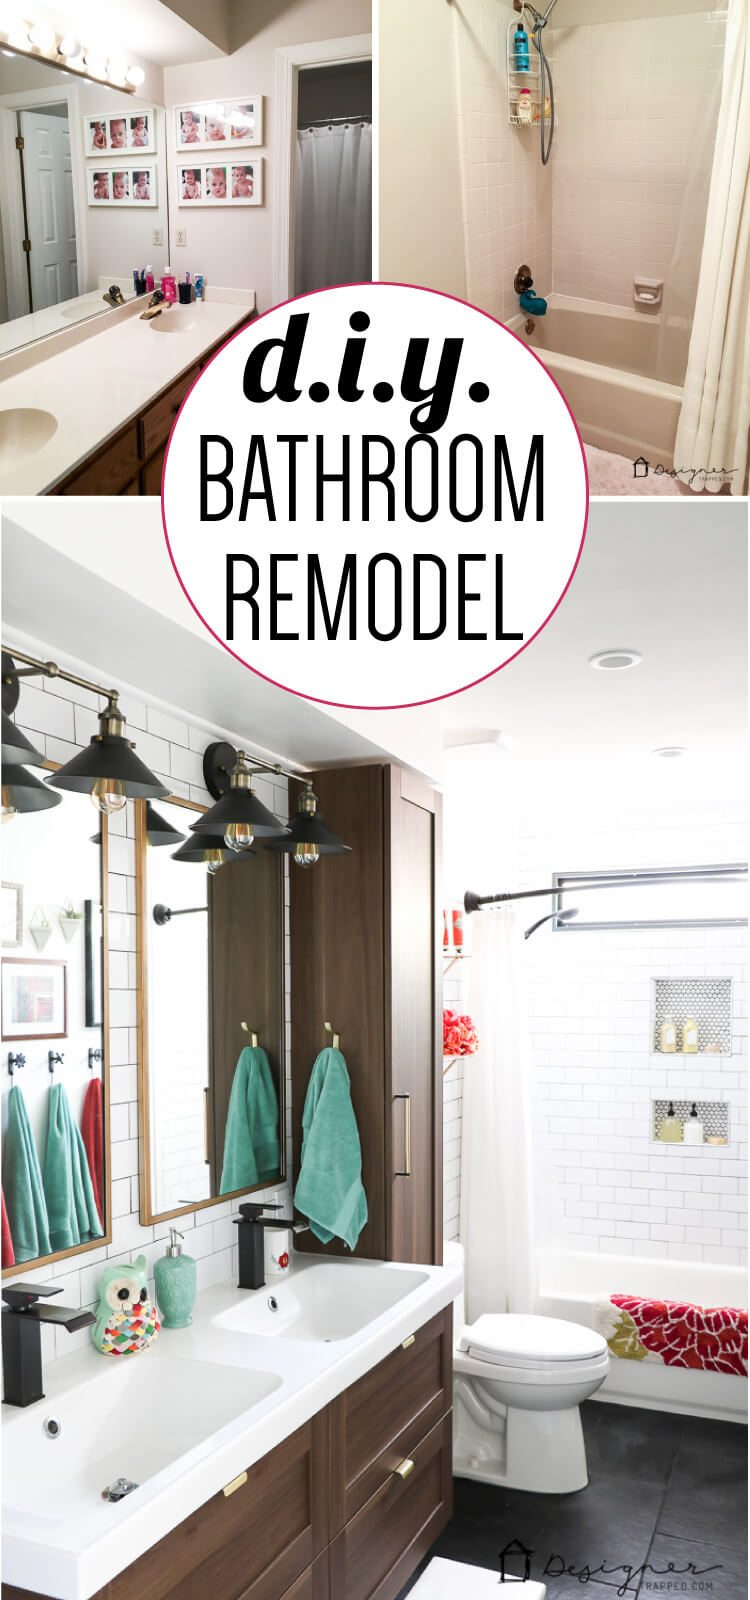 Bathroom Remodeling Diy diy bathroom remodel reveal | designer trapped in a lawyer's body